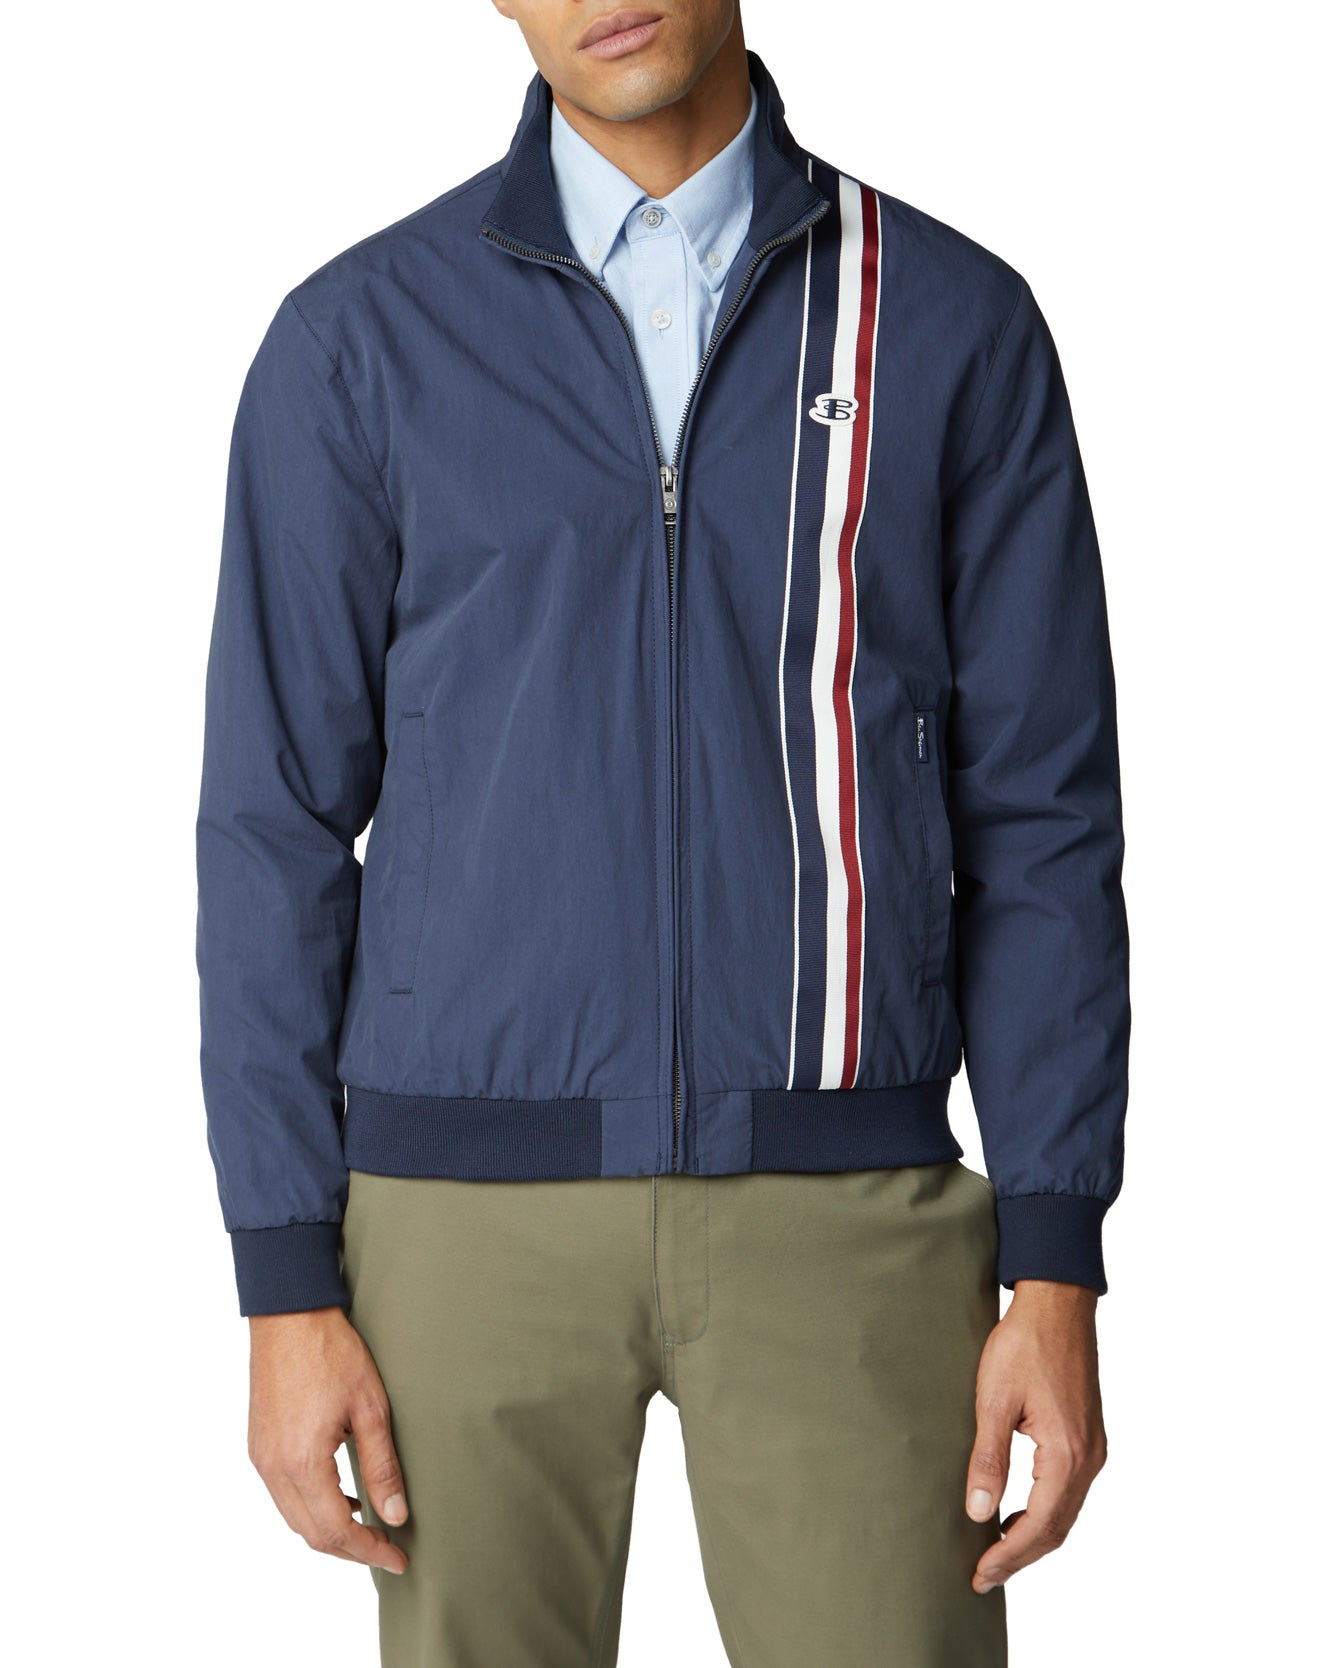 Sports Harrington Jacket - Navy